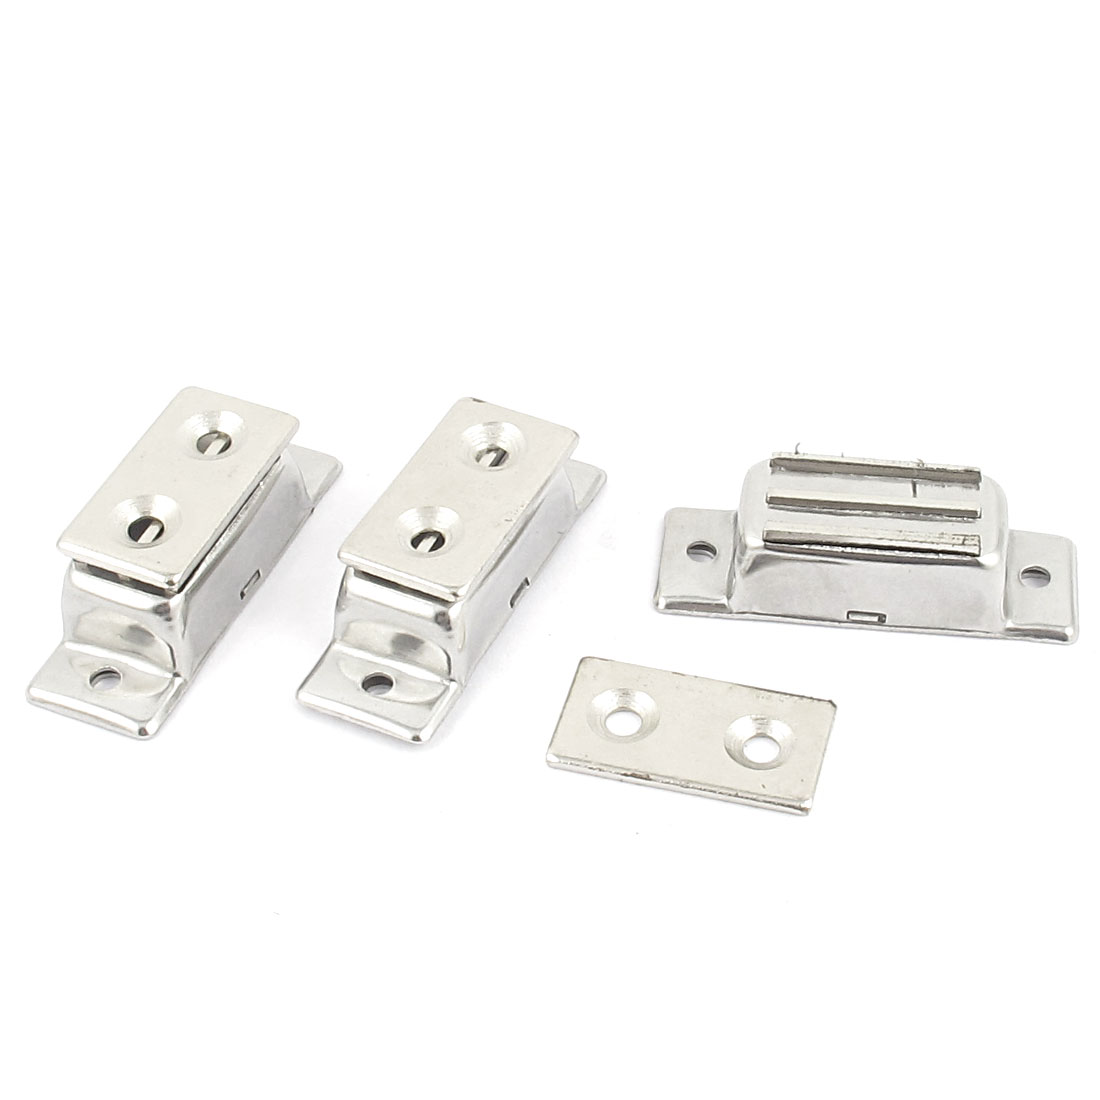 Cabinet Cupboard Wardrobe Door Magnetic Catch Latch Silver Tone 3pcs